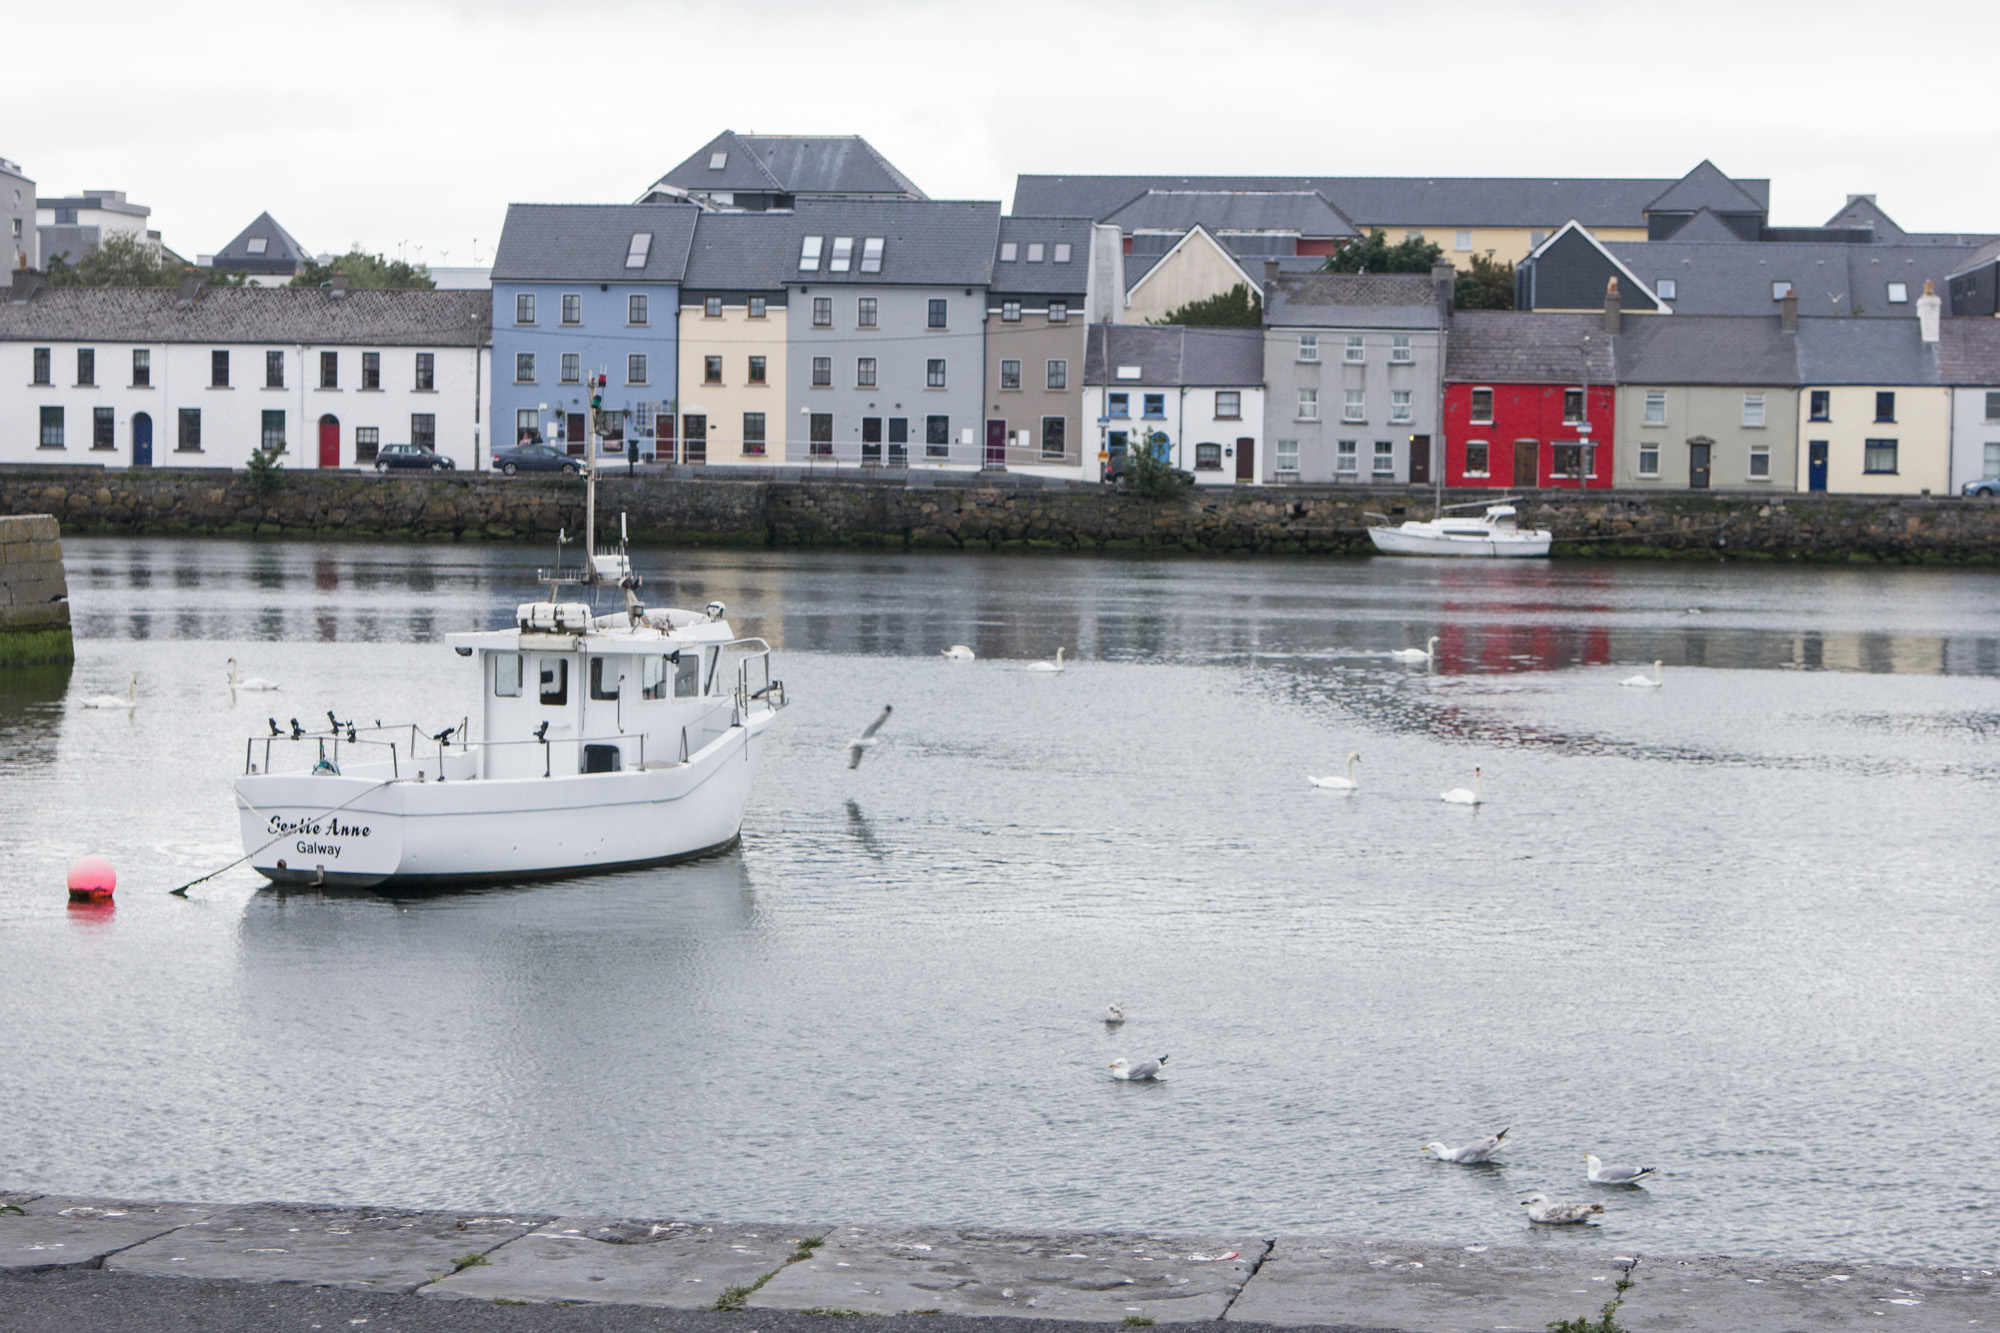 Salthill Promenade Walk has a view of colorful houses and a boat in Galway, Ireland